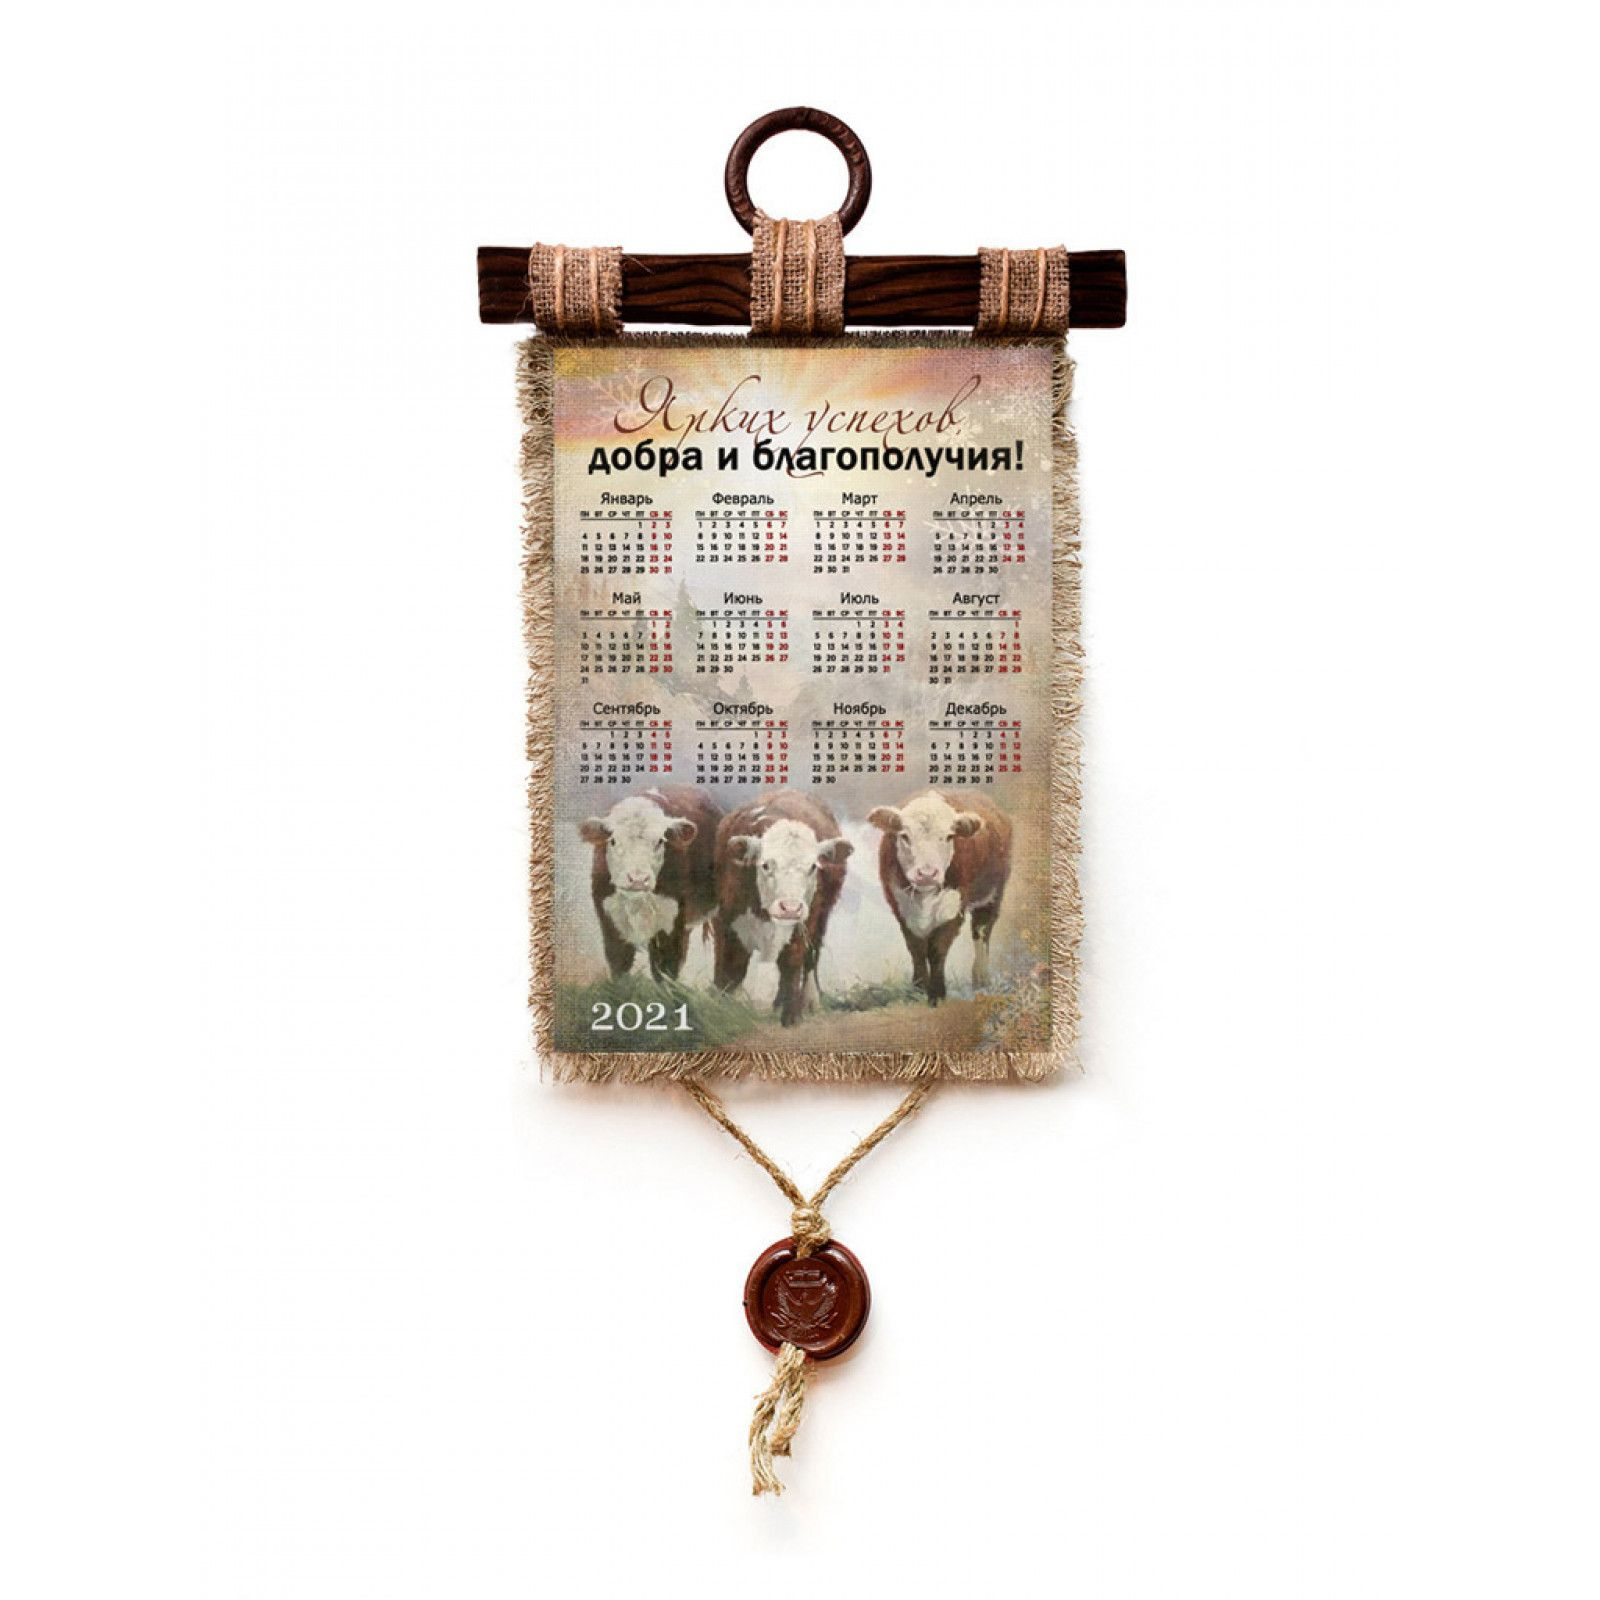 "Universal scroll / Wall calendar ""2021 Bright successes"" with a pendant made of wax, A4 format vertical"